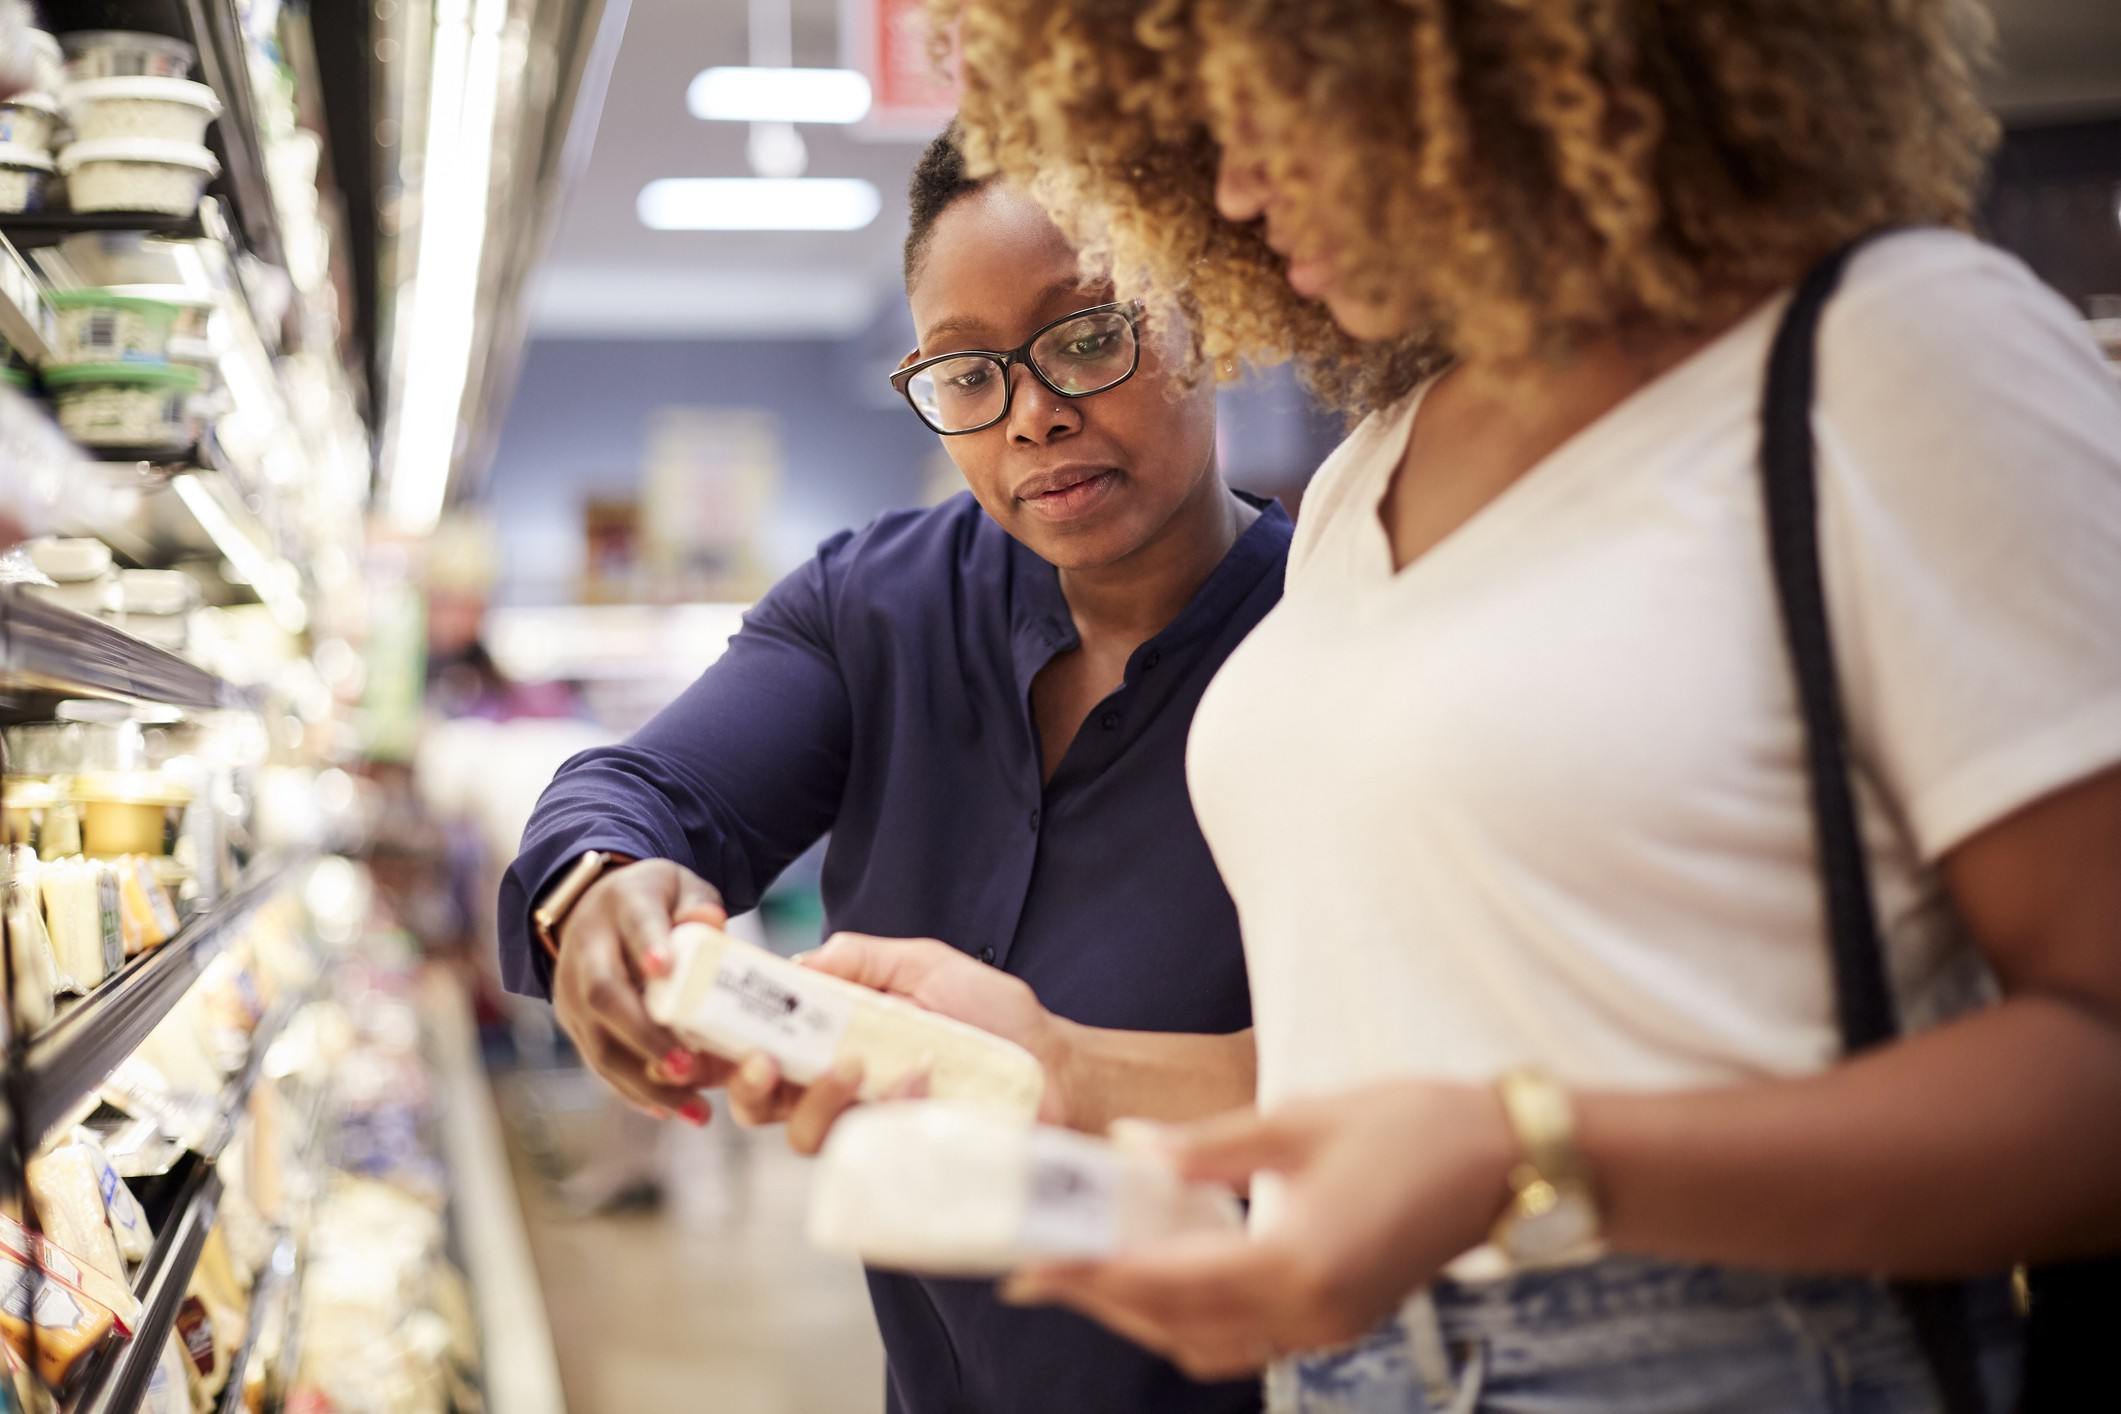 A photo of two black women examining food at the grocery store.